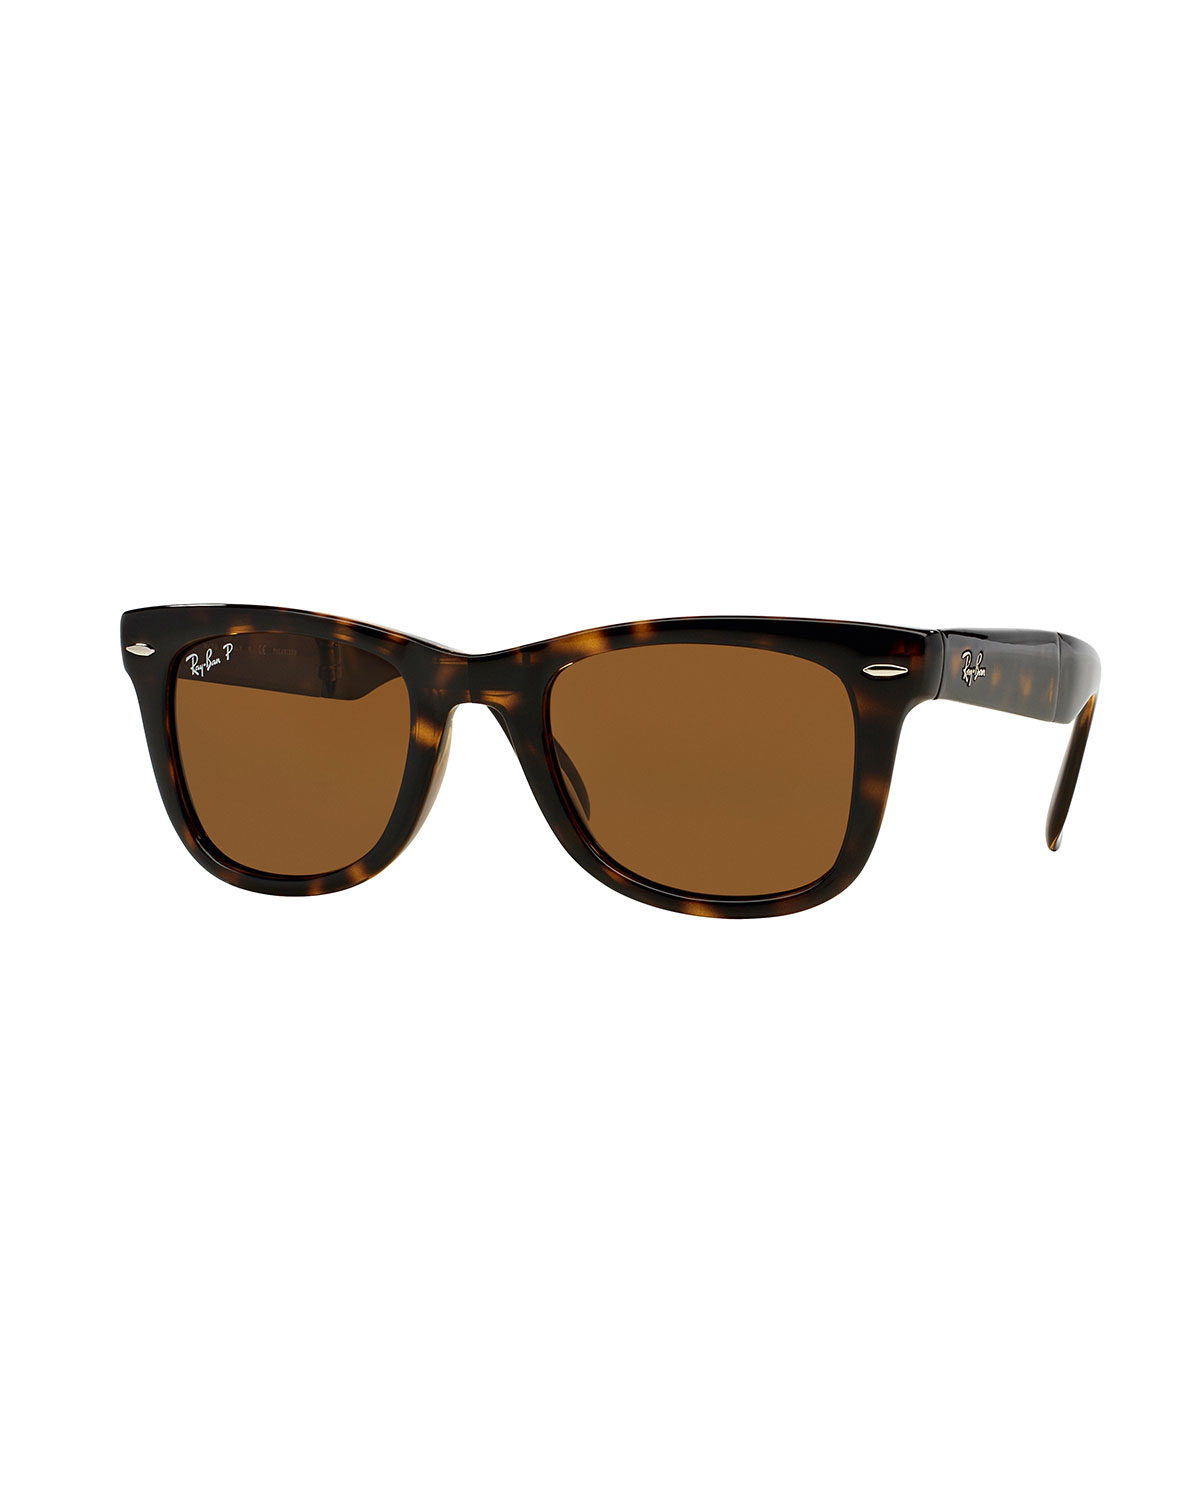 fe0463b740 Ray Ban Wayfarer For Men Polarized « Heritage Malta